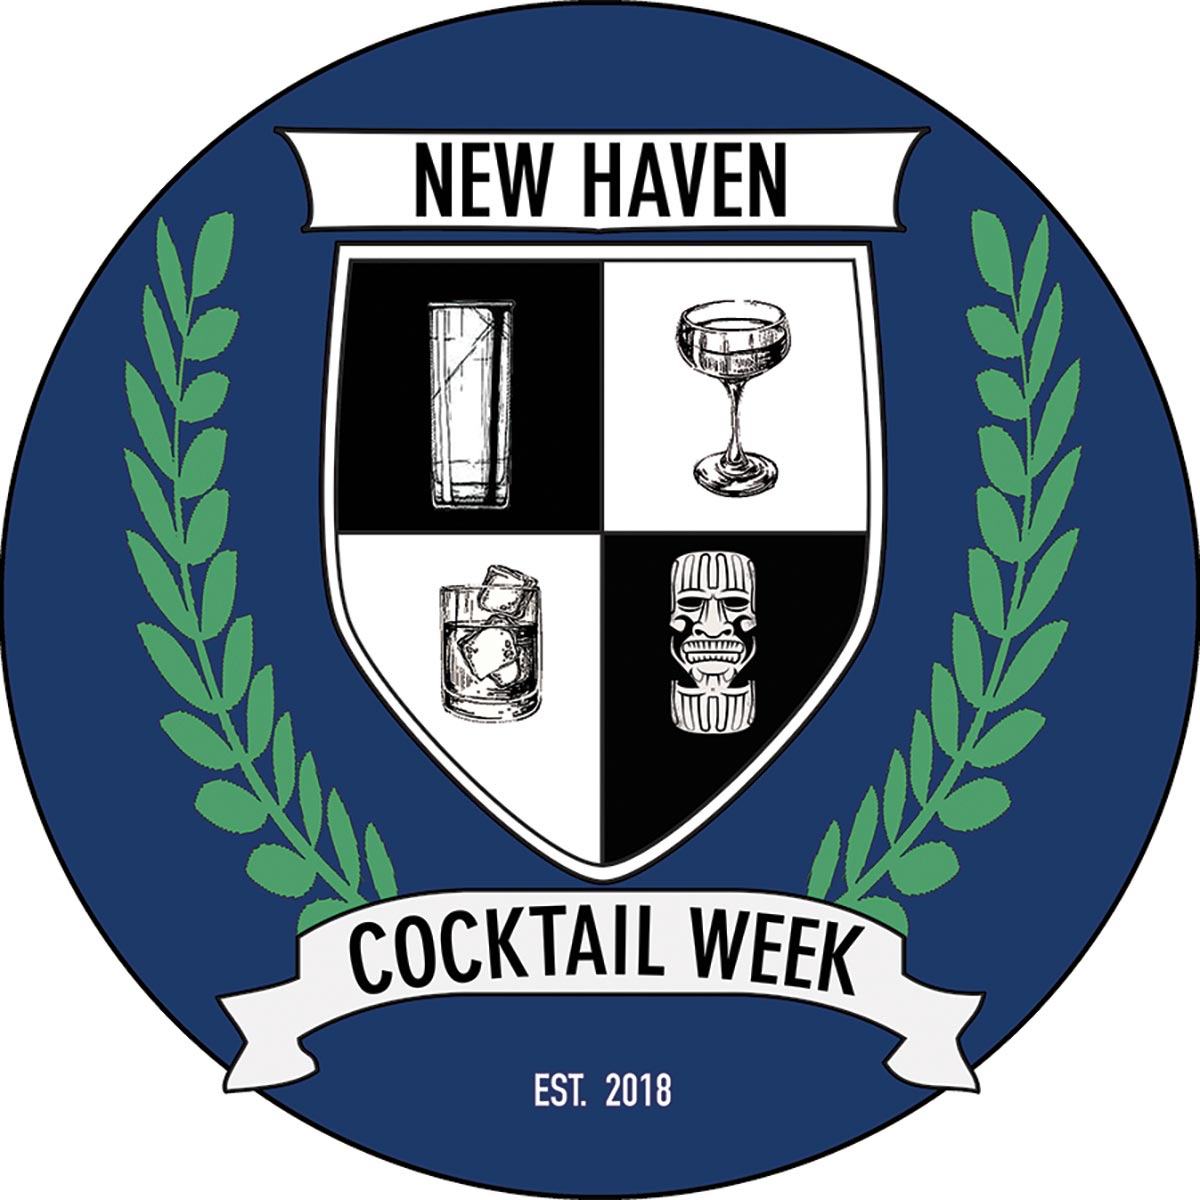 August 31 – September 5, 2020: New Haven Cocktail Week